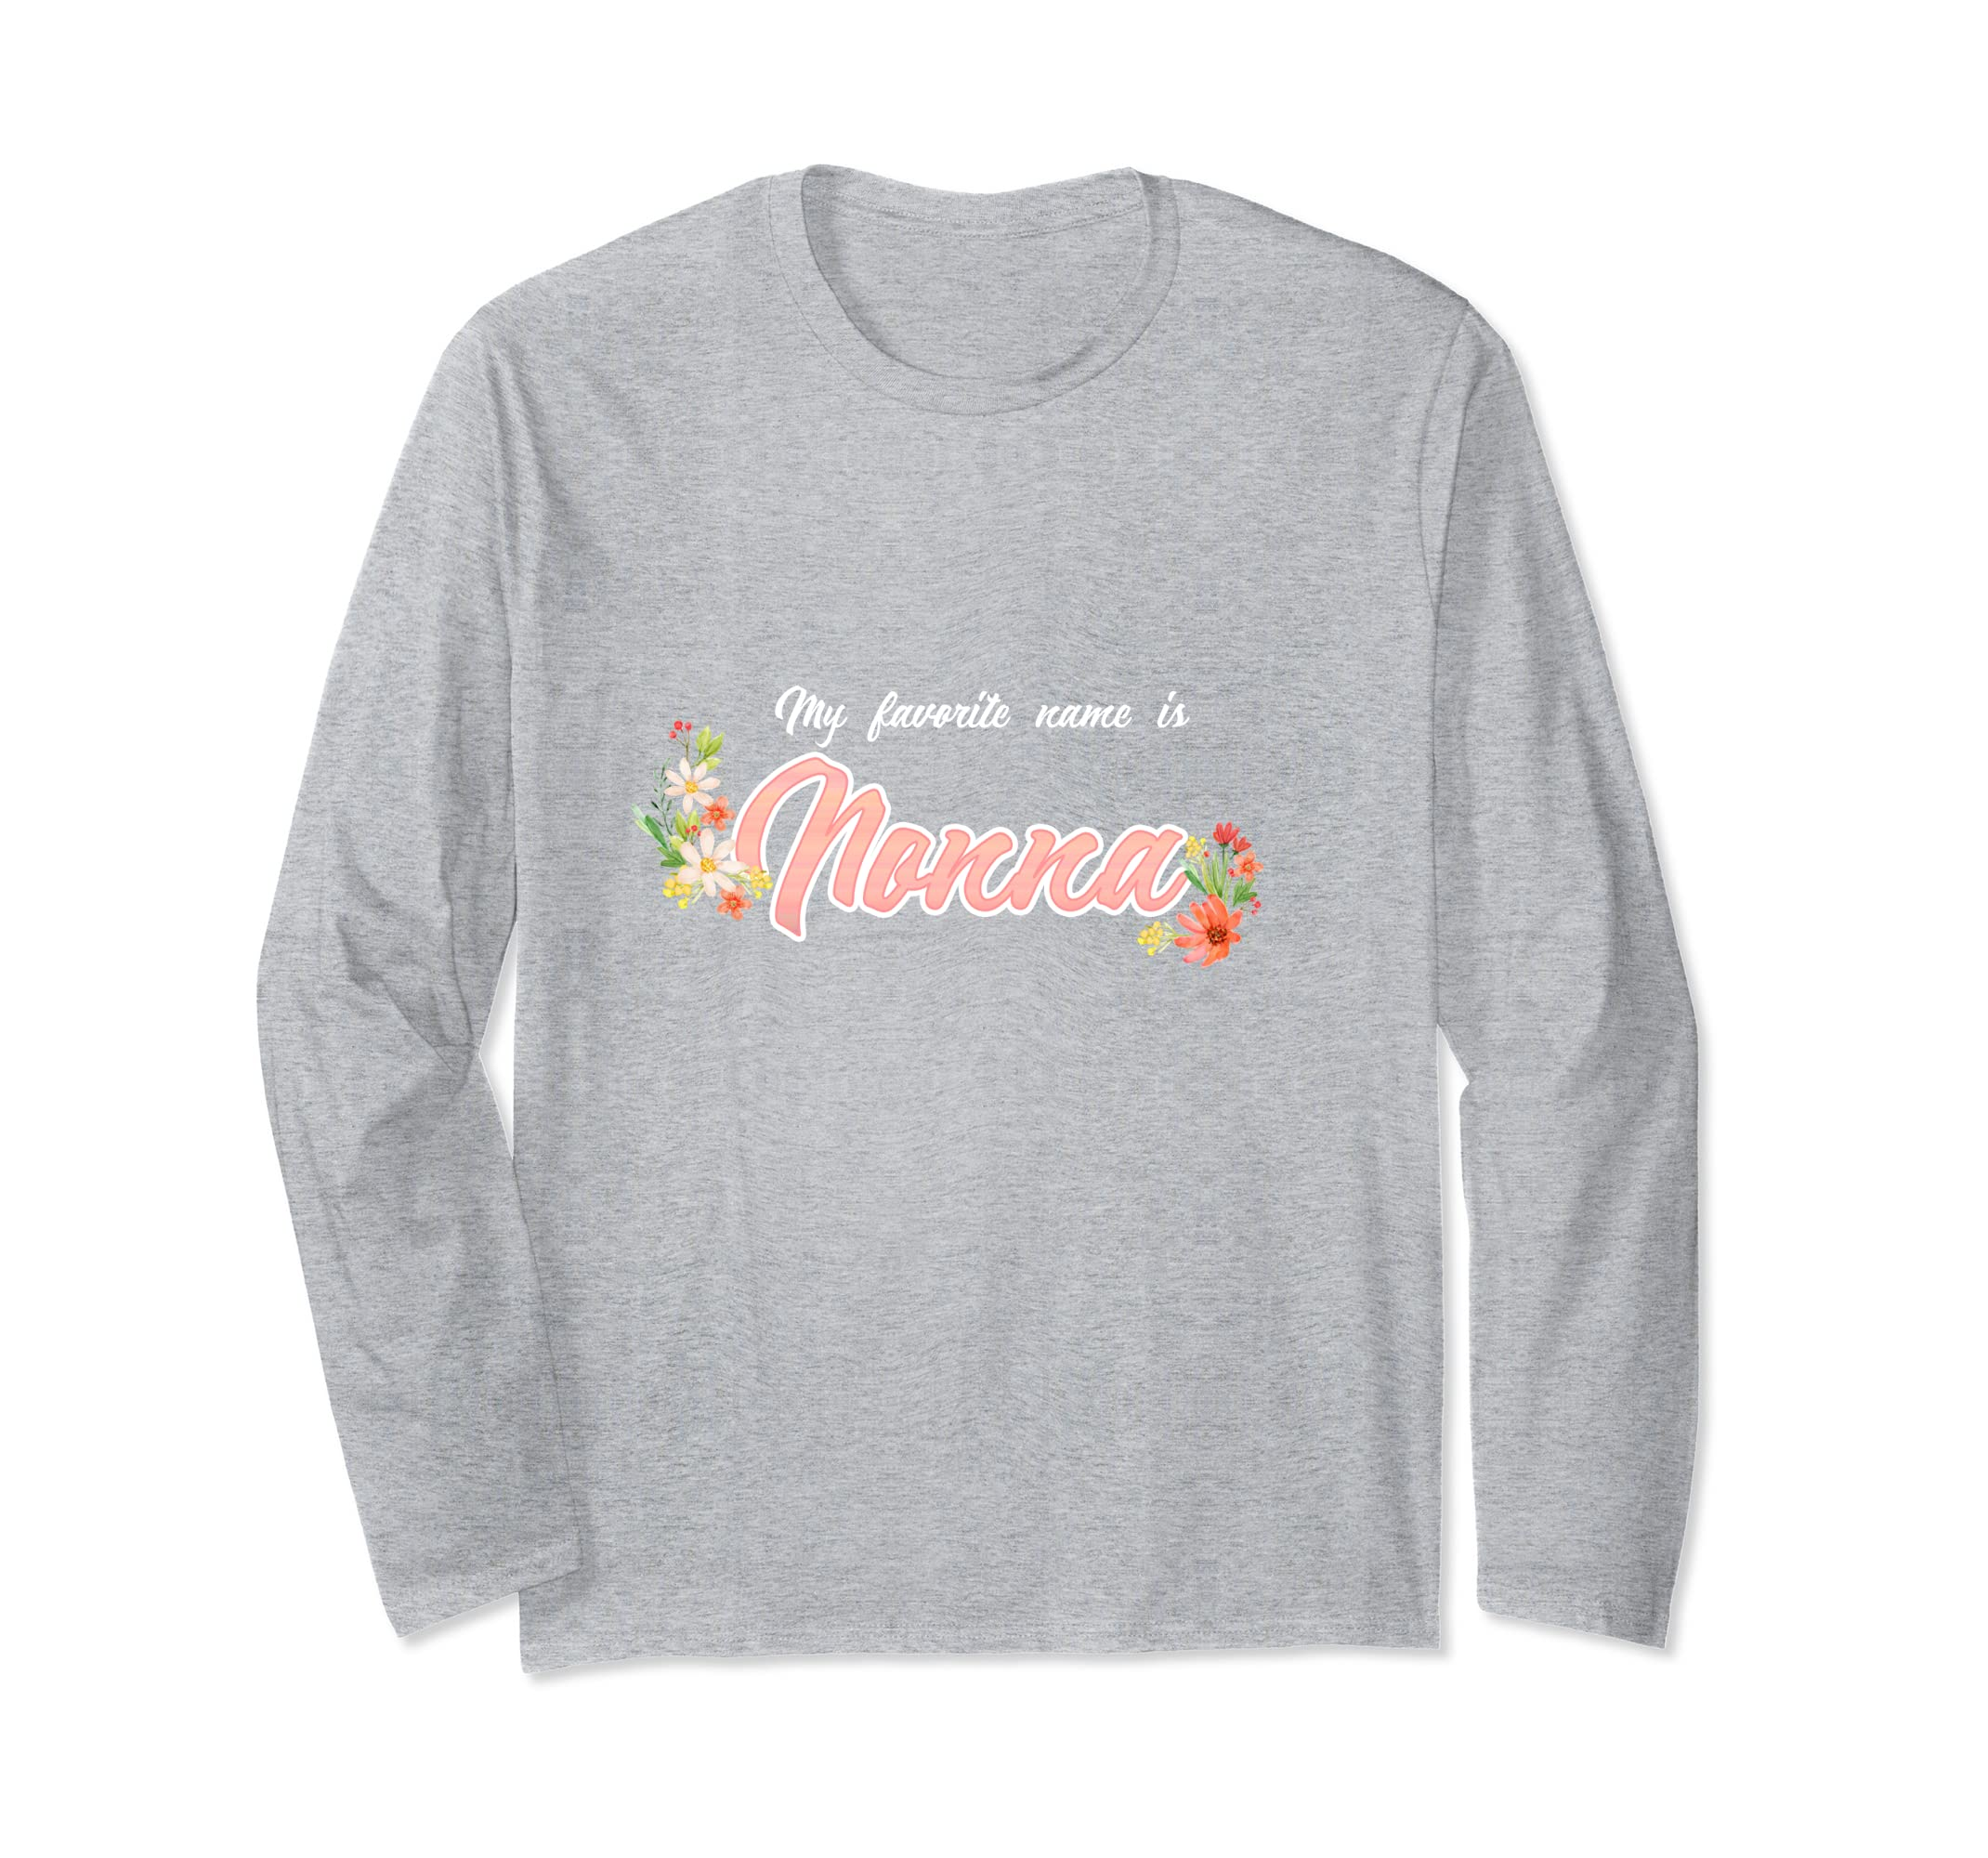 My Favorite Name is Nonna Shirt Great Gifts from Grandkids-ln